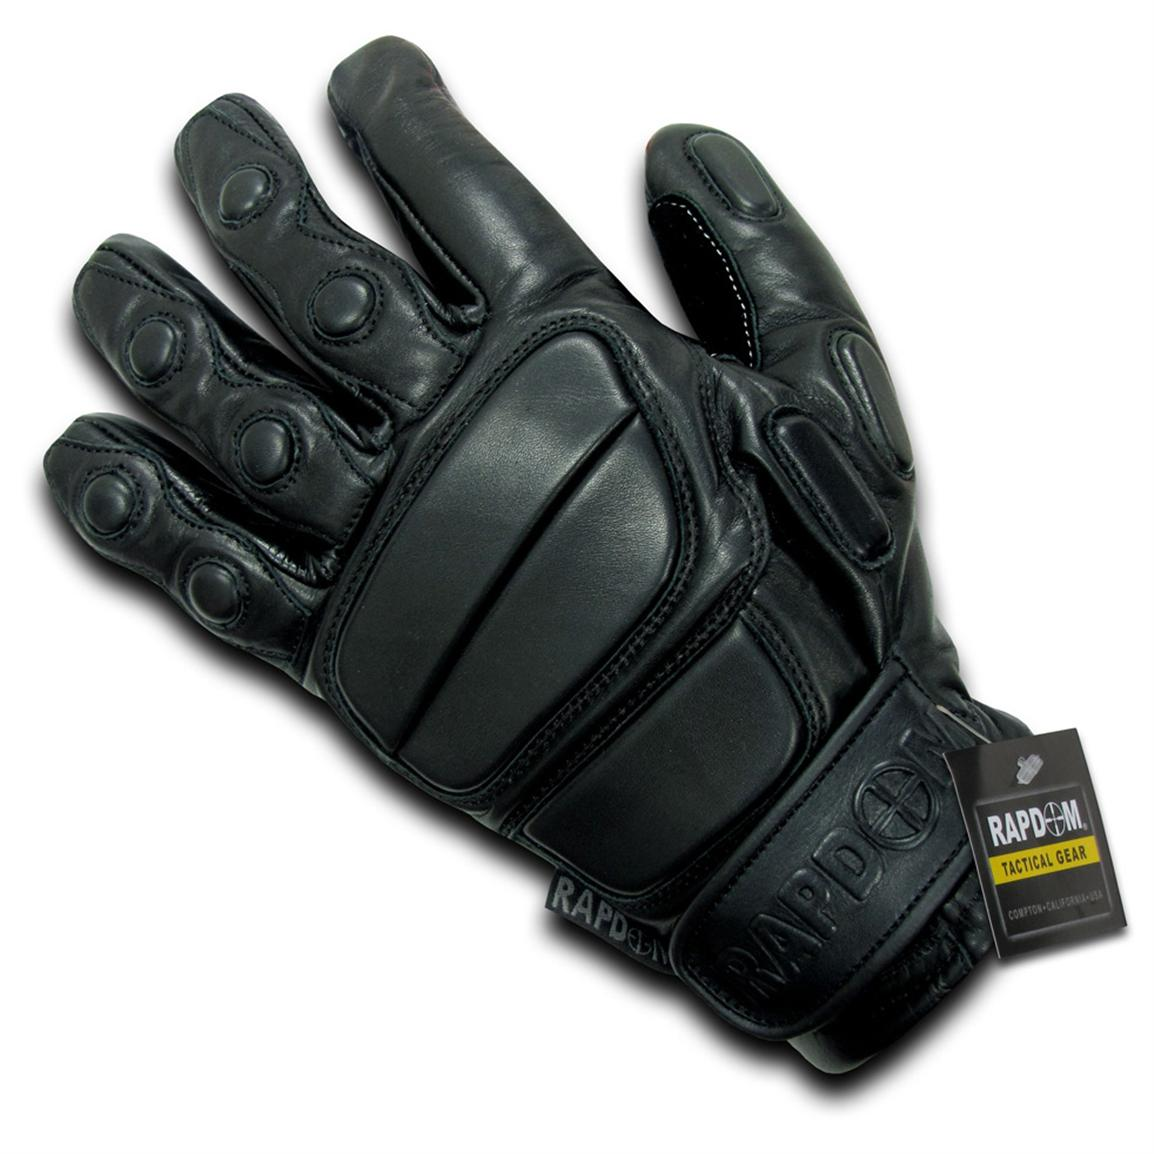 Rapid Dominance Heavy Duty Tactical Gloves